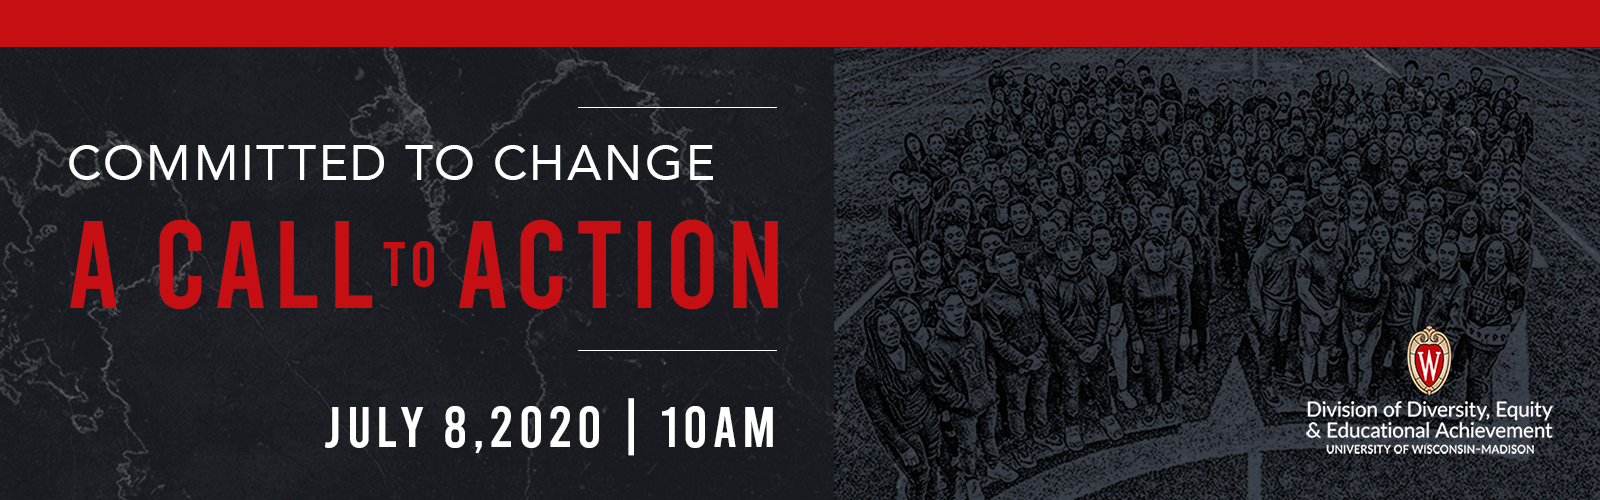 """Graphic advertising """"A Call to Action"""" a online event on July 8, 2020. Details at link."""